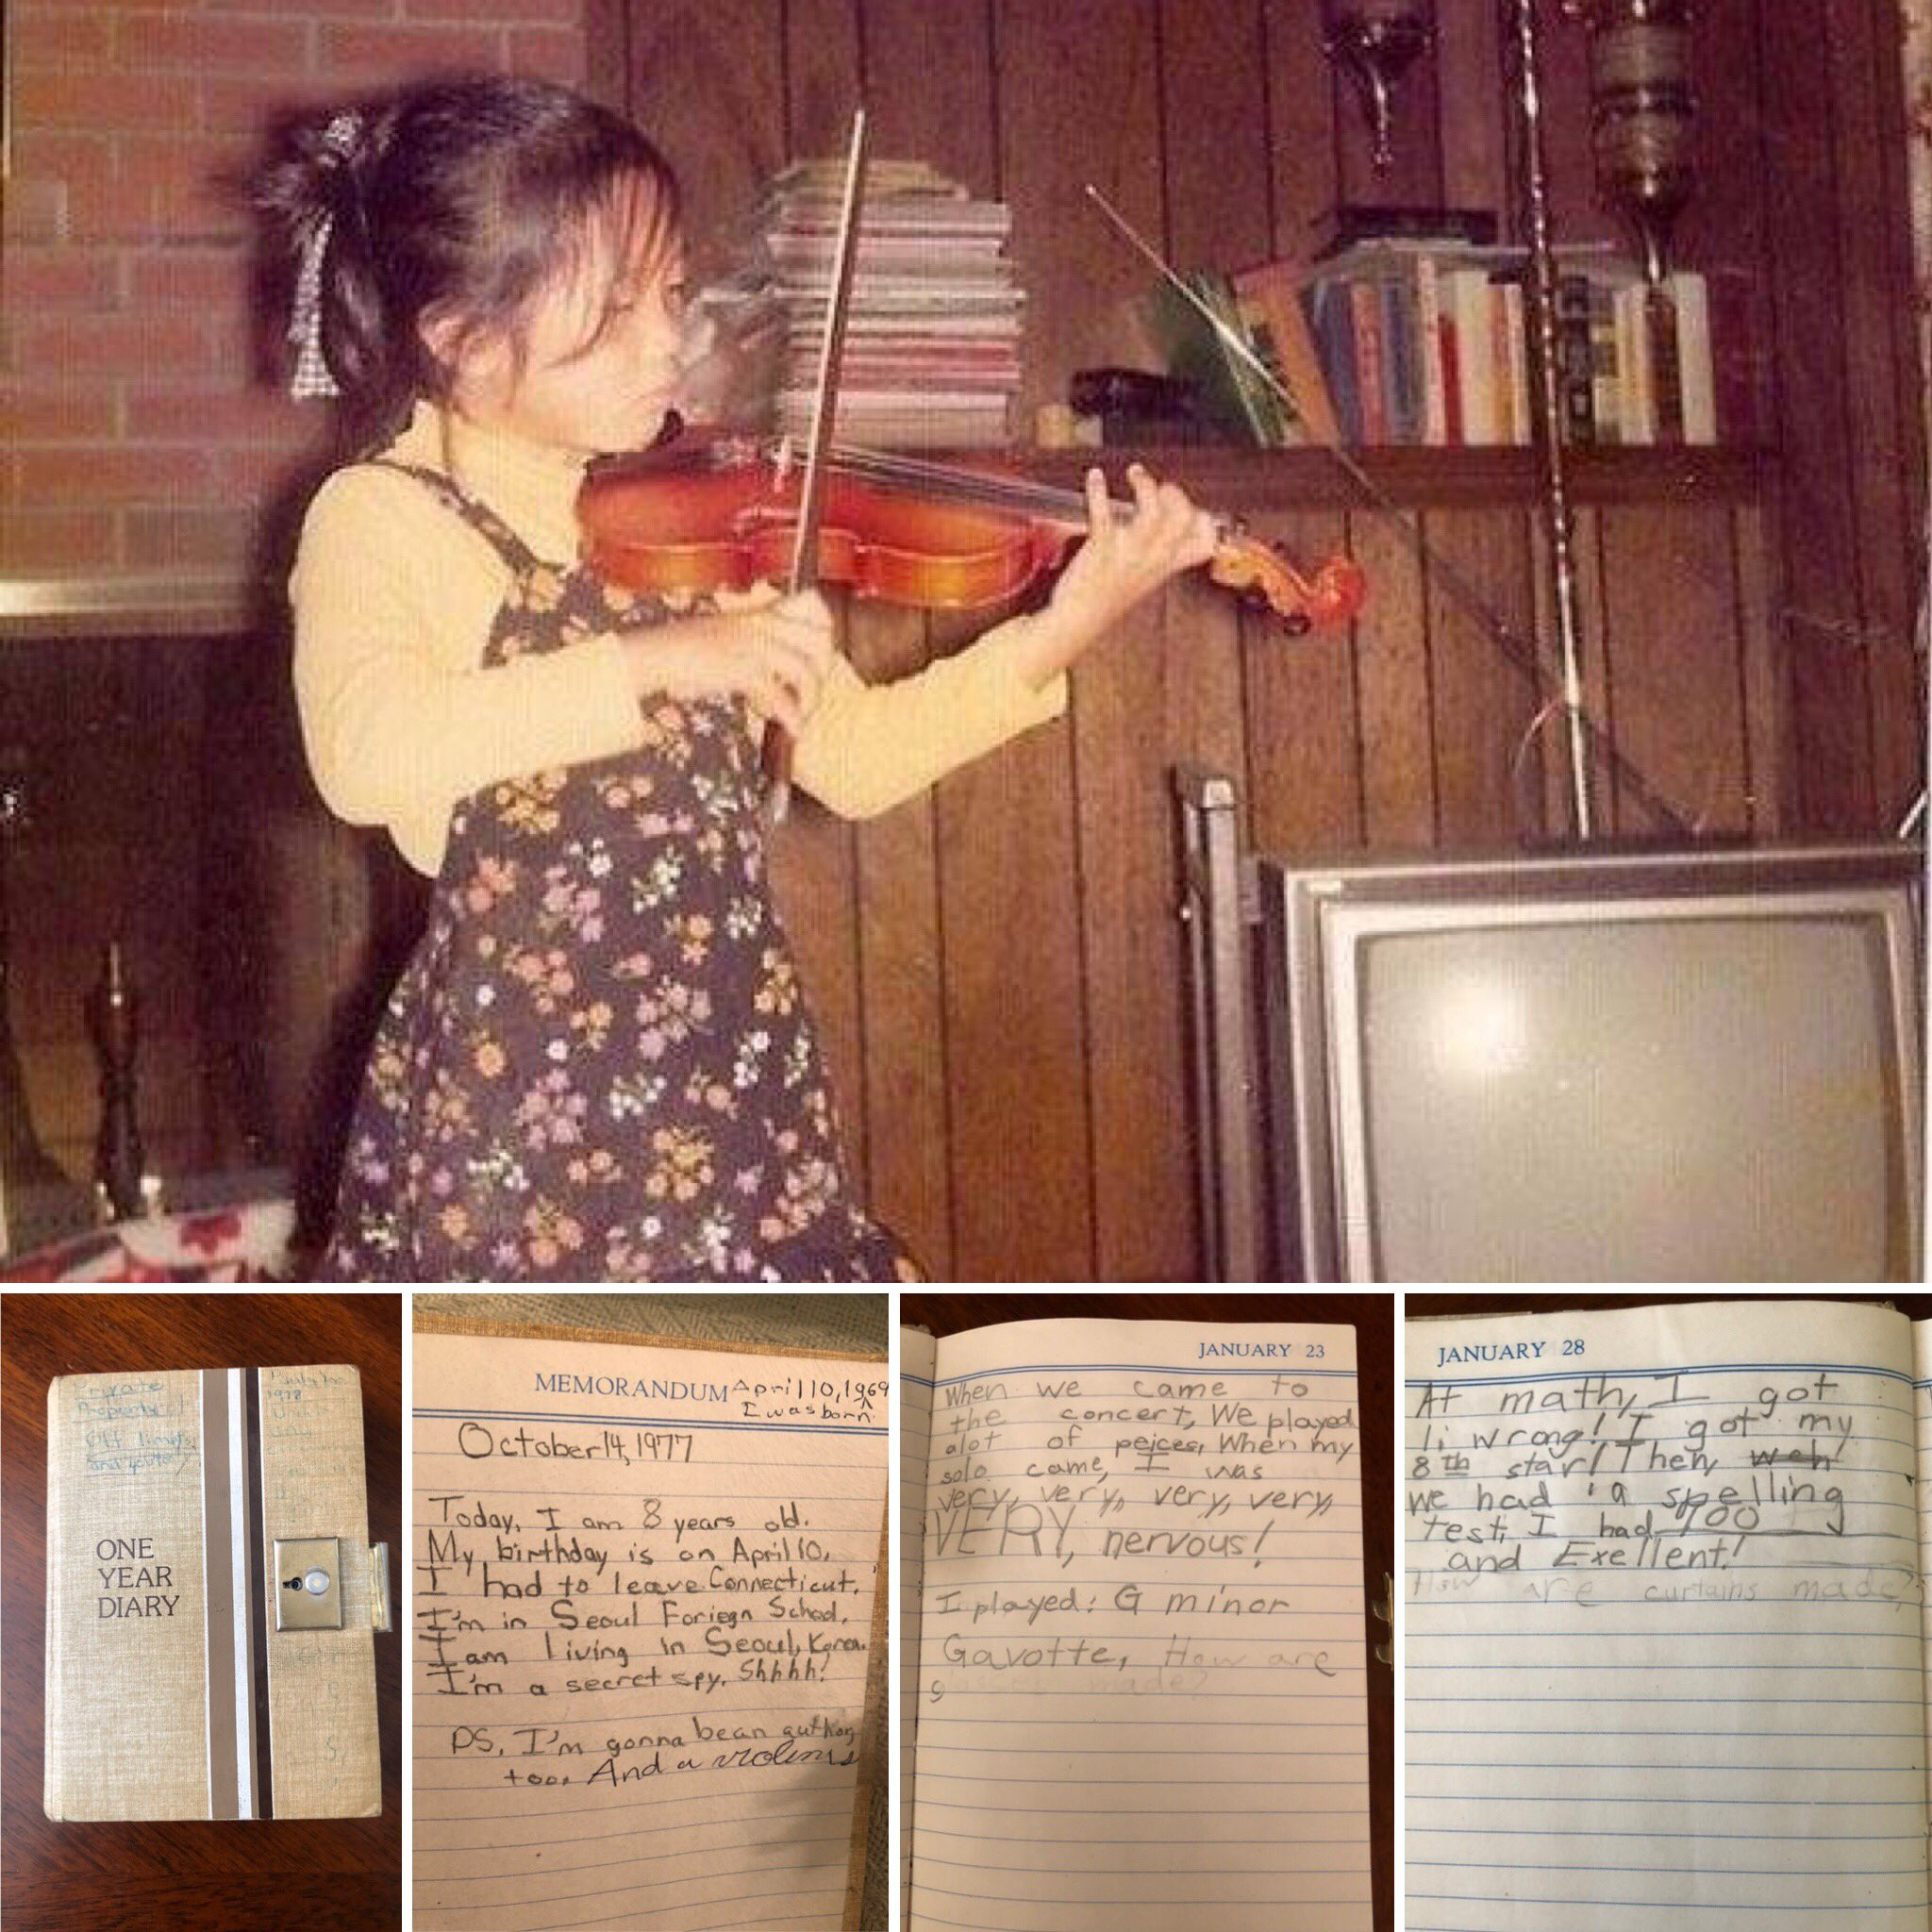 #YooAreHighStrung - Happy #FlashbackFriday as Yoo find more evidence in your recently unearthed diary that Yoo were a hyper-competitive 8-year-old hellbent on world domination. 😝🤓🎻🎼📝📓 https://t.co/YrRx0MNzn8